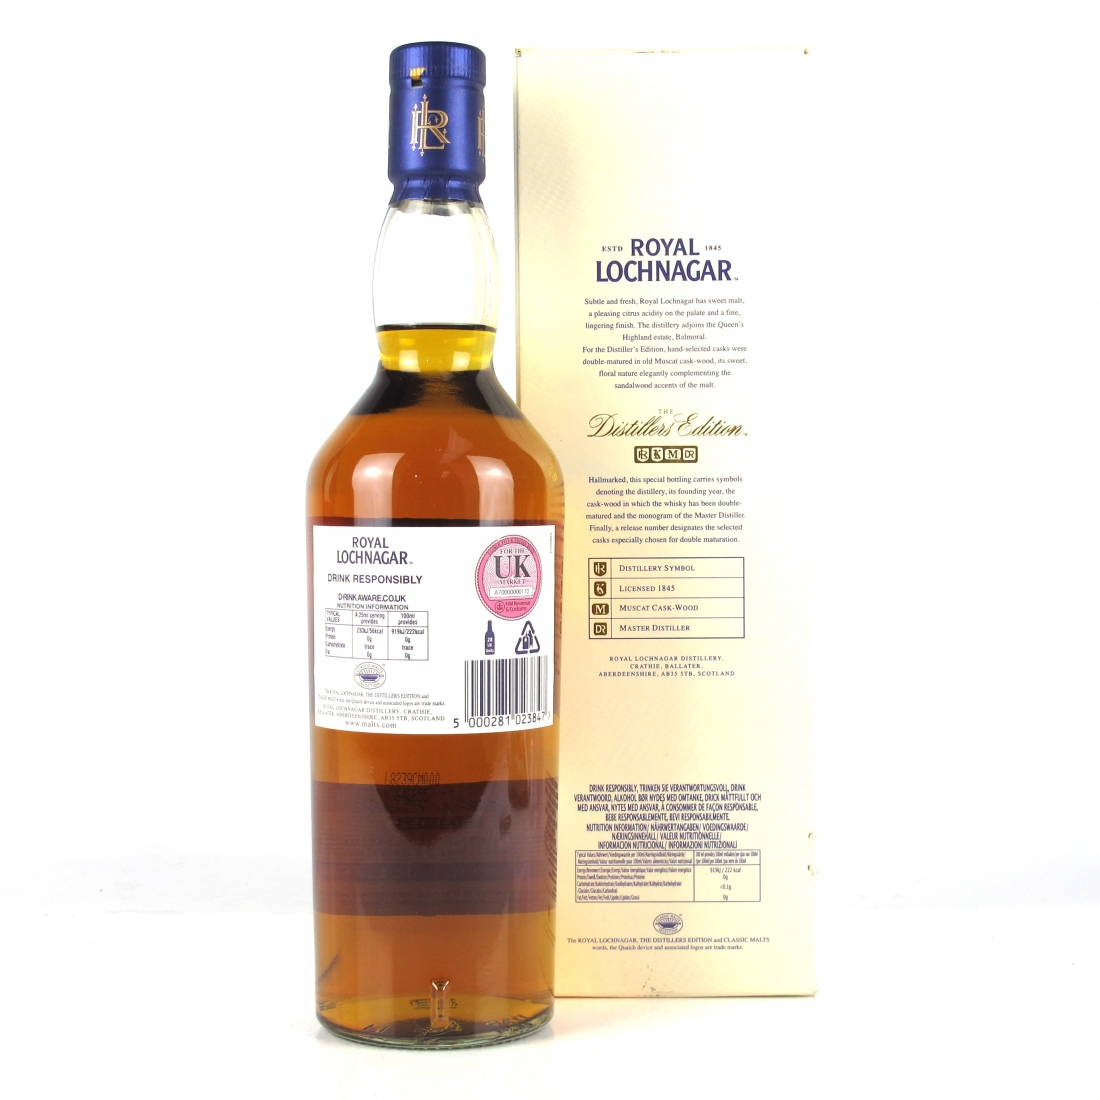 Royal Lochnagar 1996 Distillers Edition